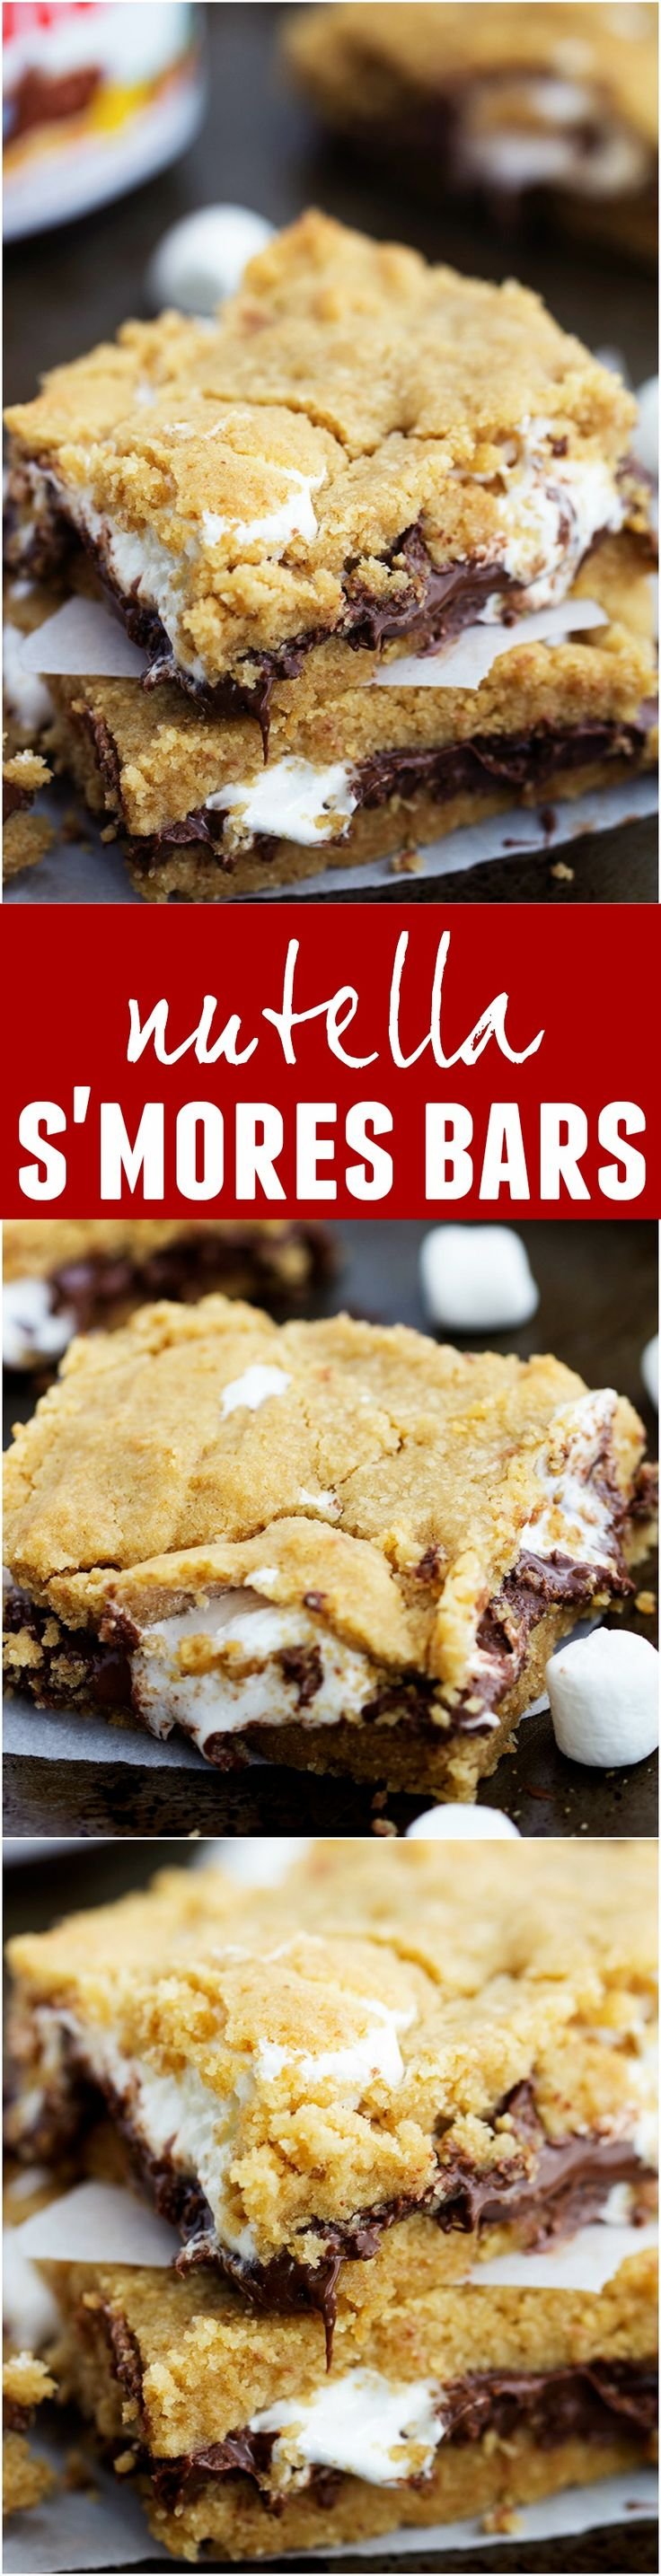 Nutella Smores Bars - Ooey and gooey and one of the best treats EVER! So easy and no campfire required!